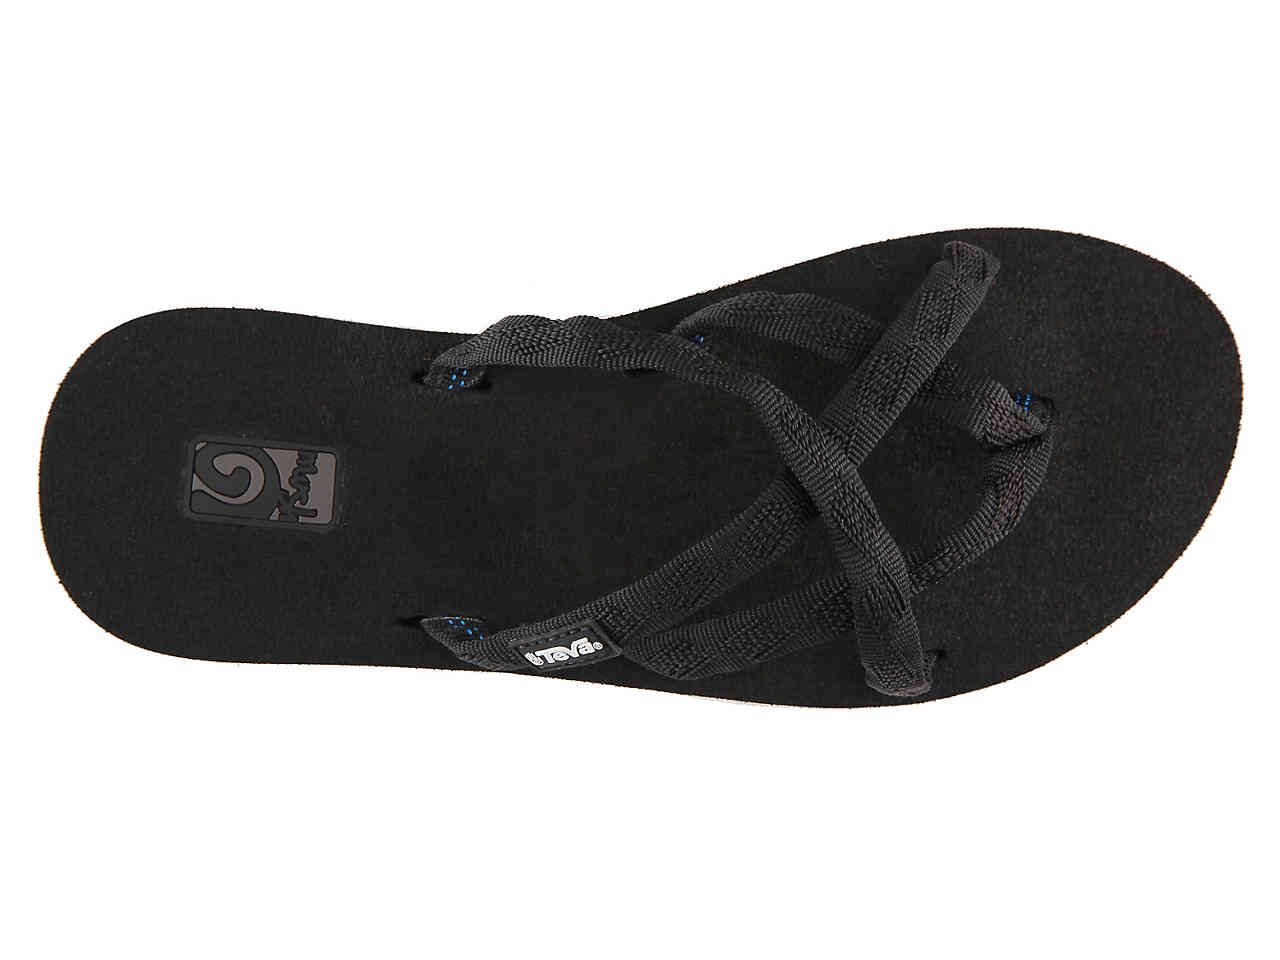 d17b226b892341 Women s Teva Olowahu Flip Flop Sandals - The Walking Shoe